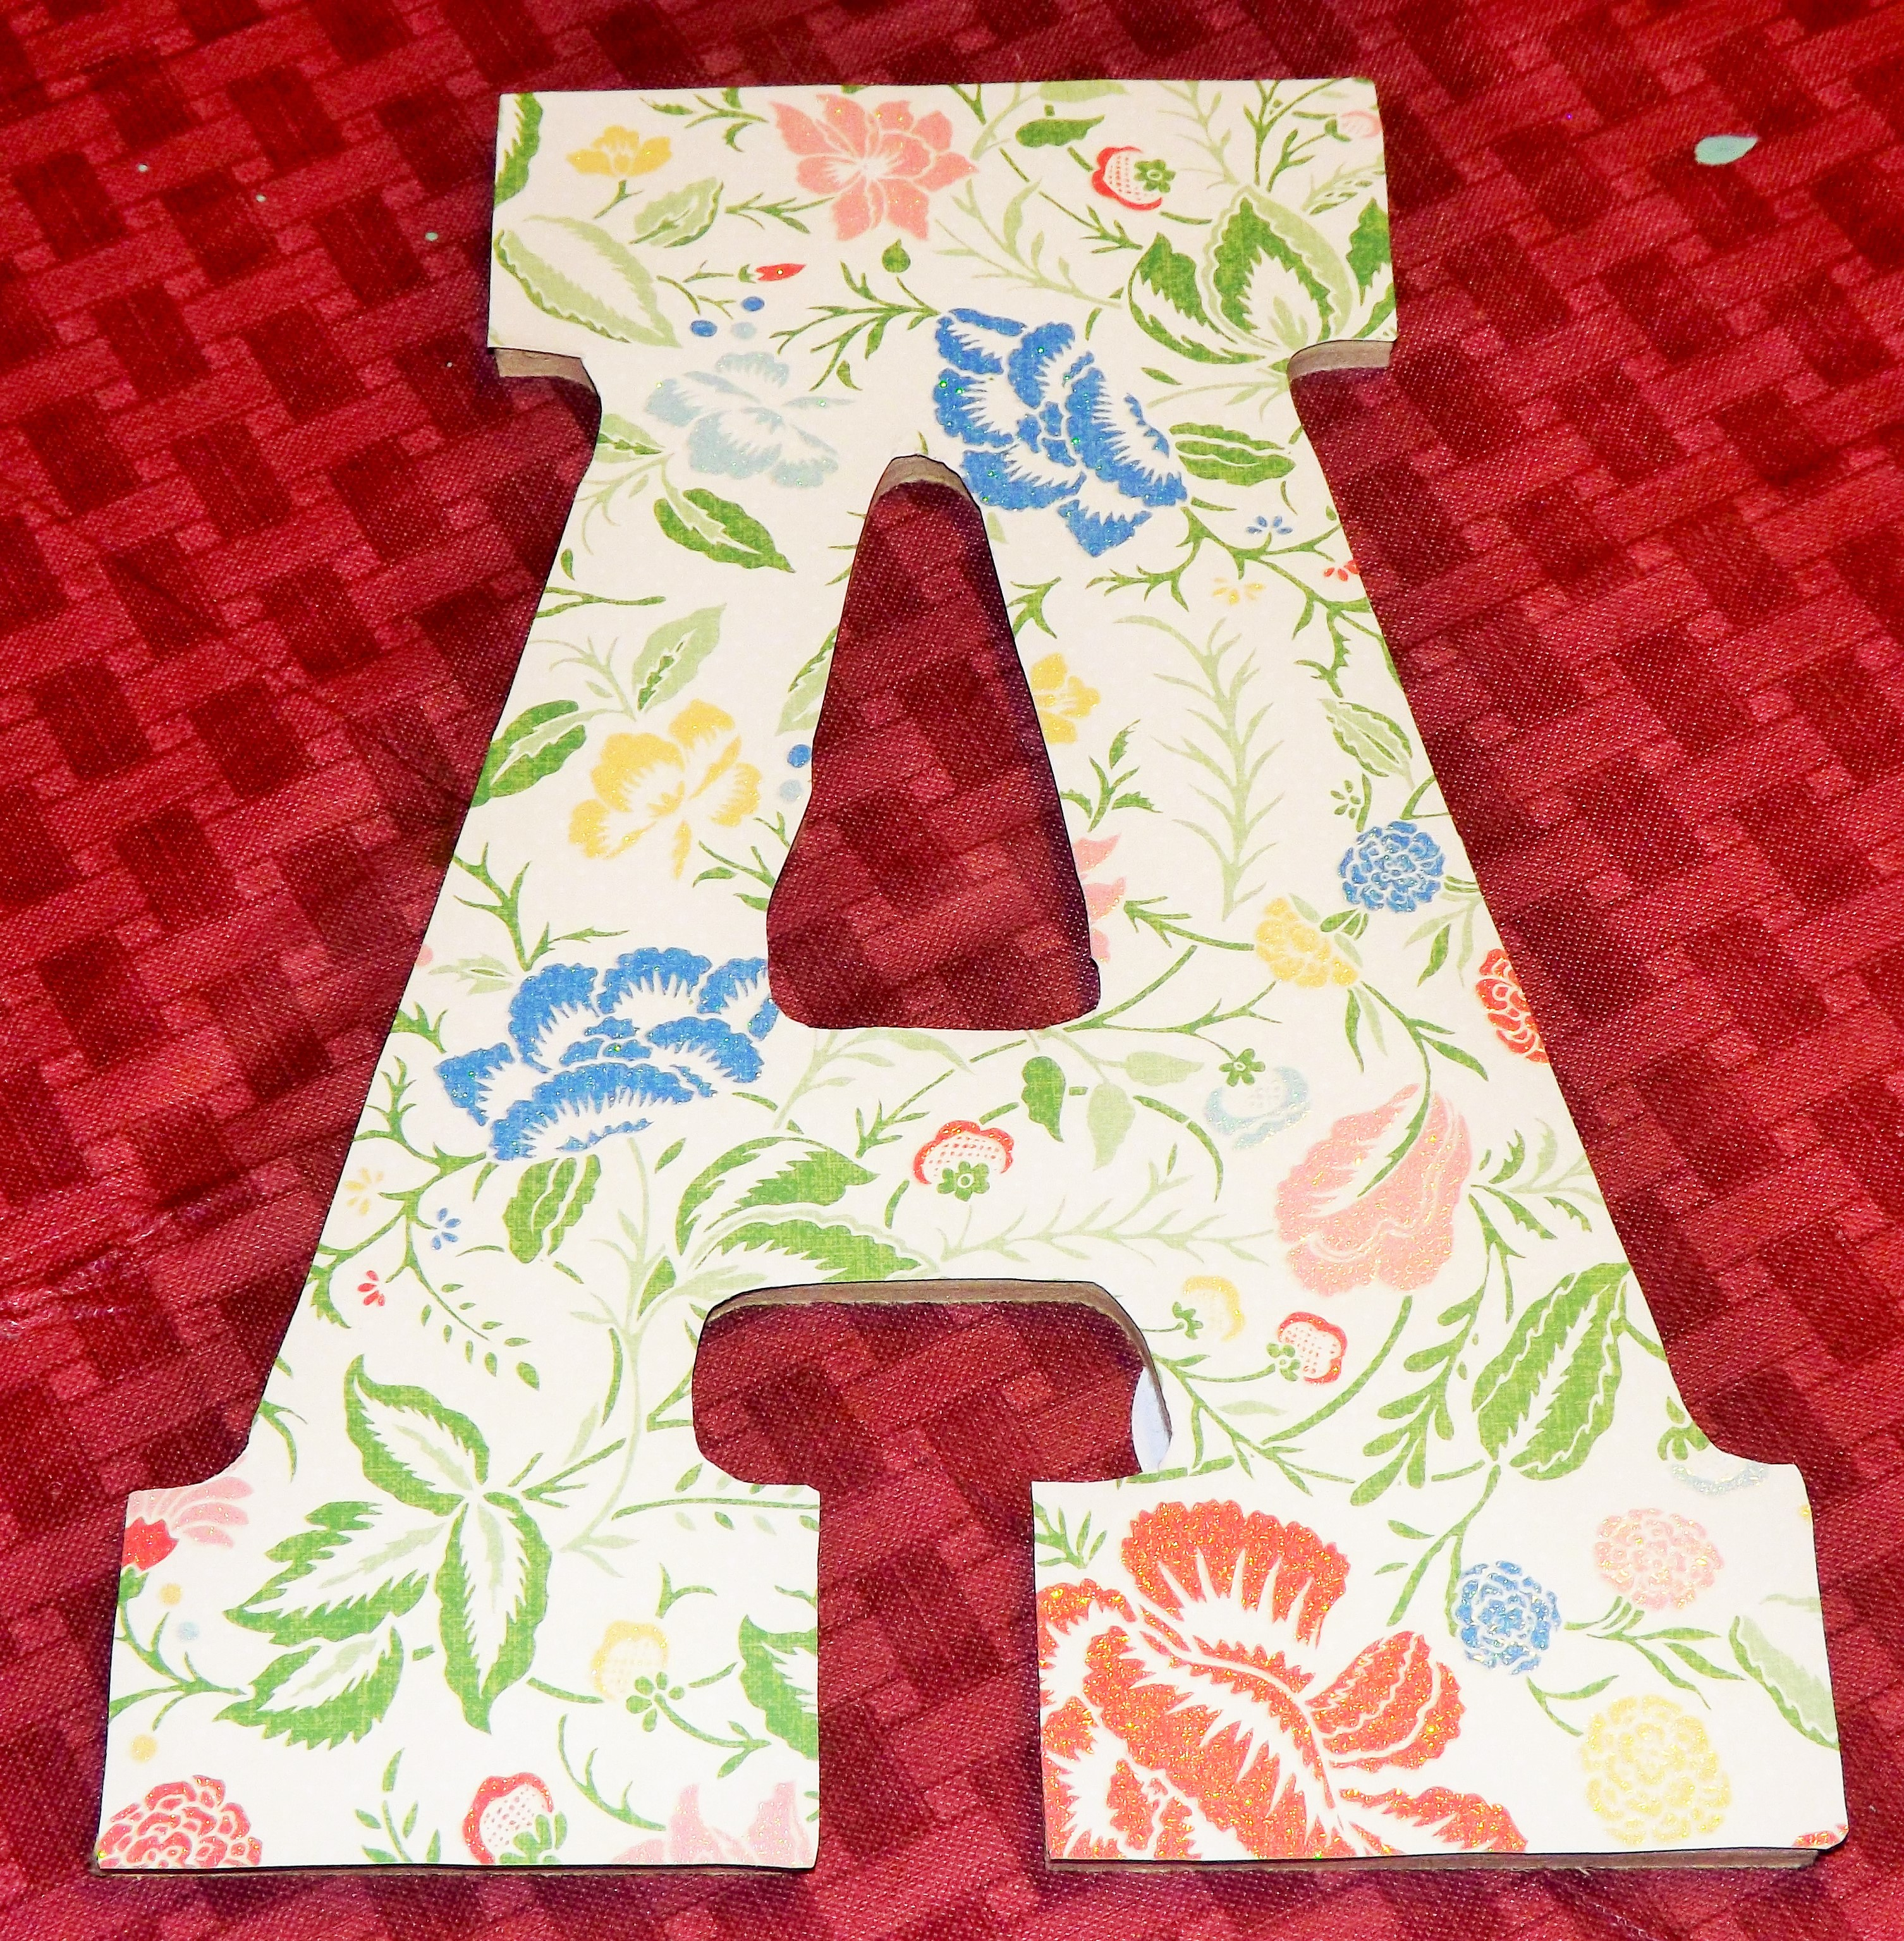 How to glue scrapbook paper to wood letters - Download